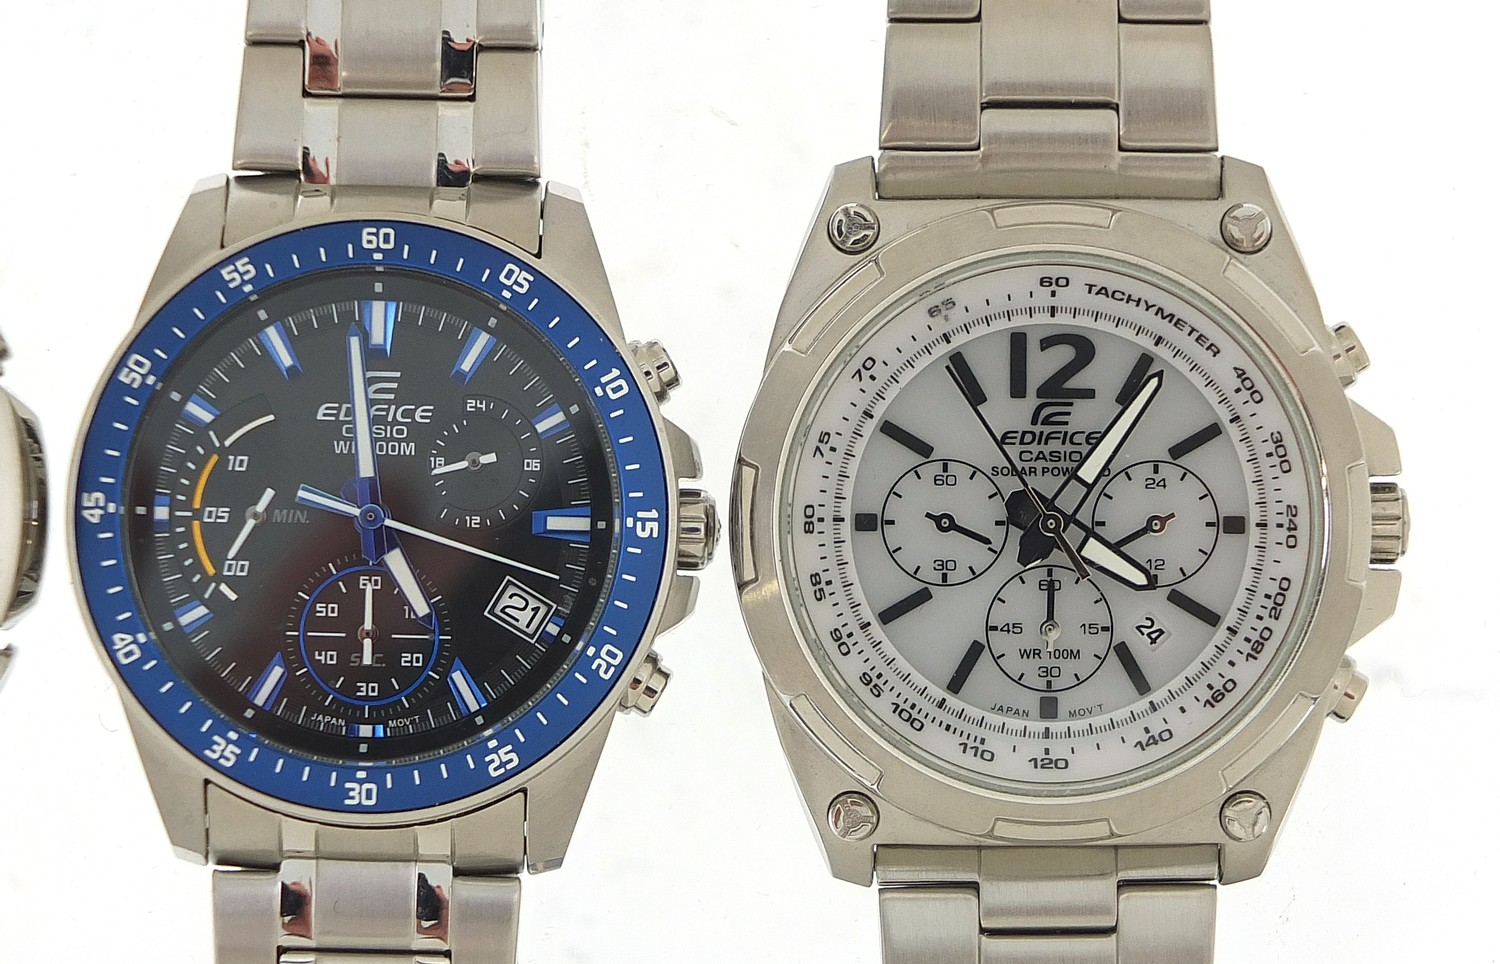 Four gentlemen's Casio Edifice wristwatches, three with boxes and paperwork, models EFR-545, ECW- - Image 3 of 6